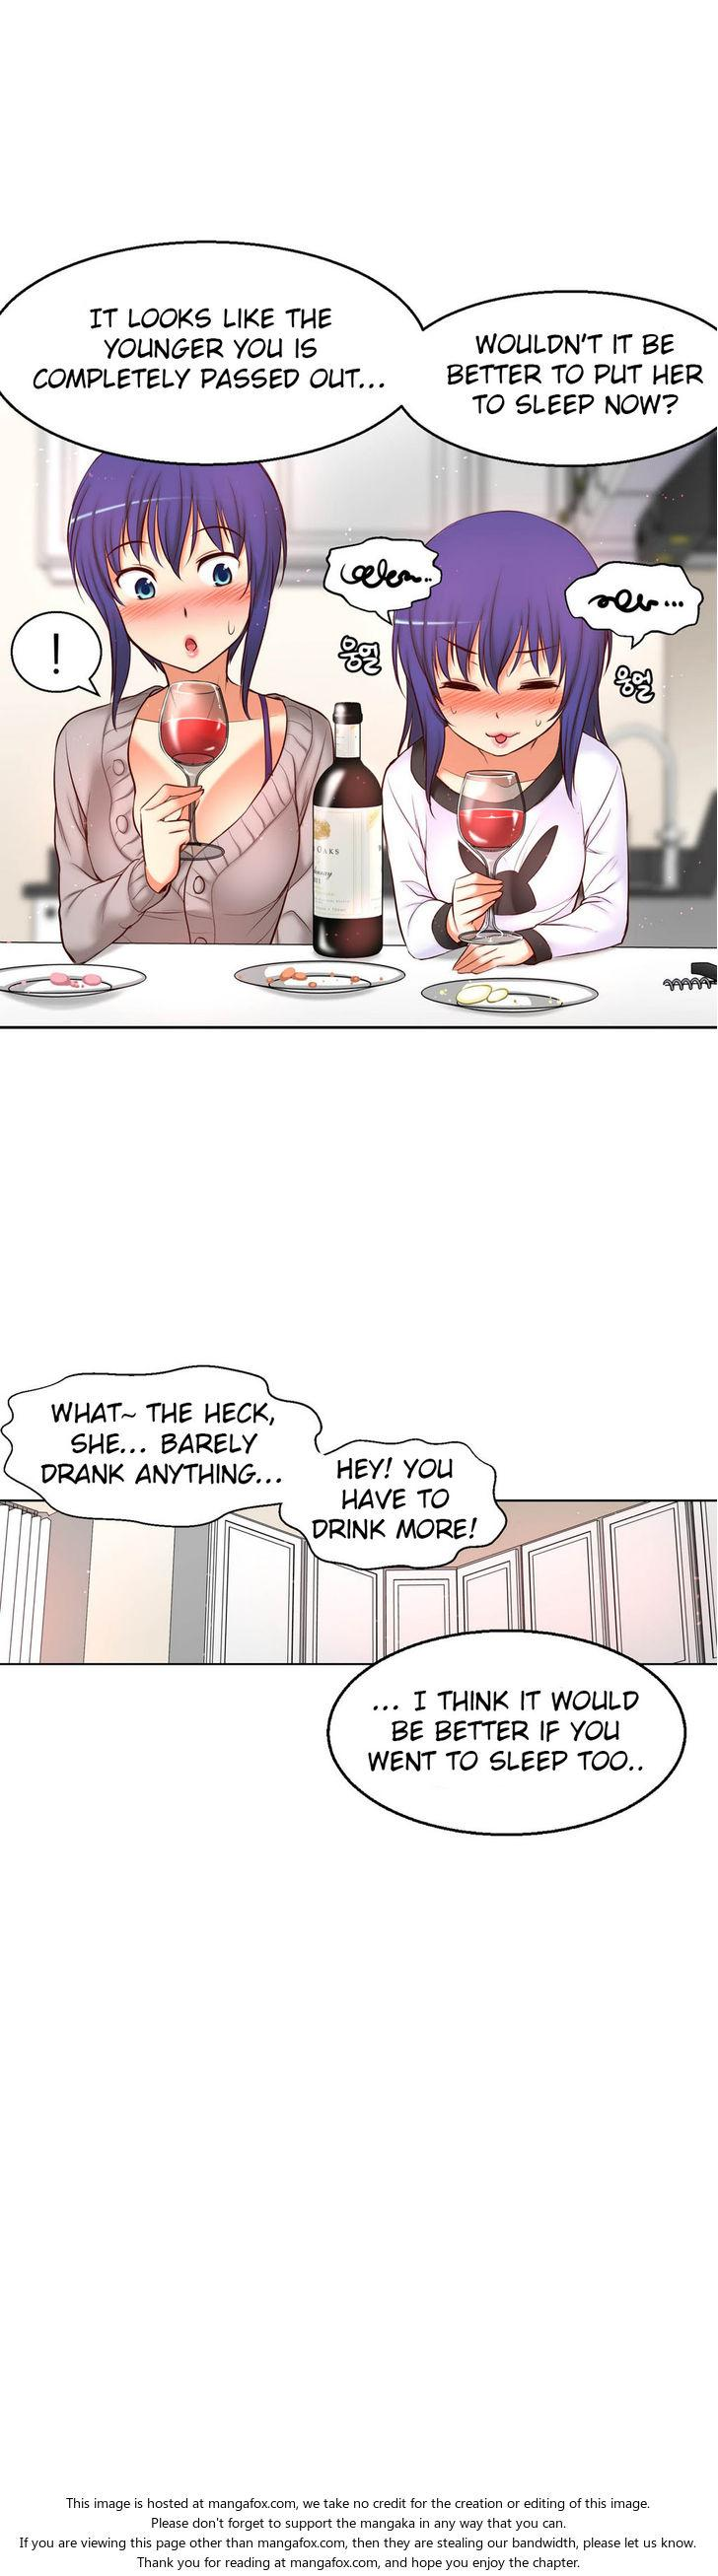 [Donggul Gom] She is Young (English) Part 1/2 1619